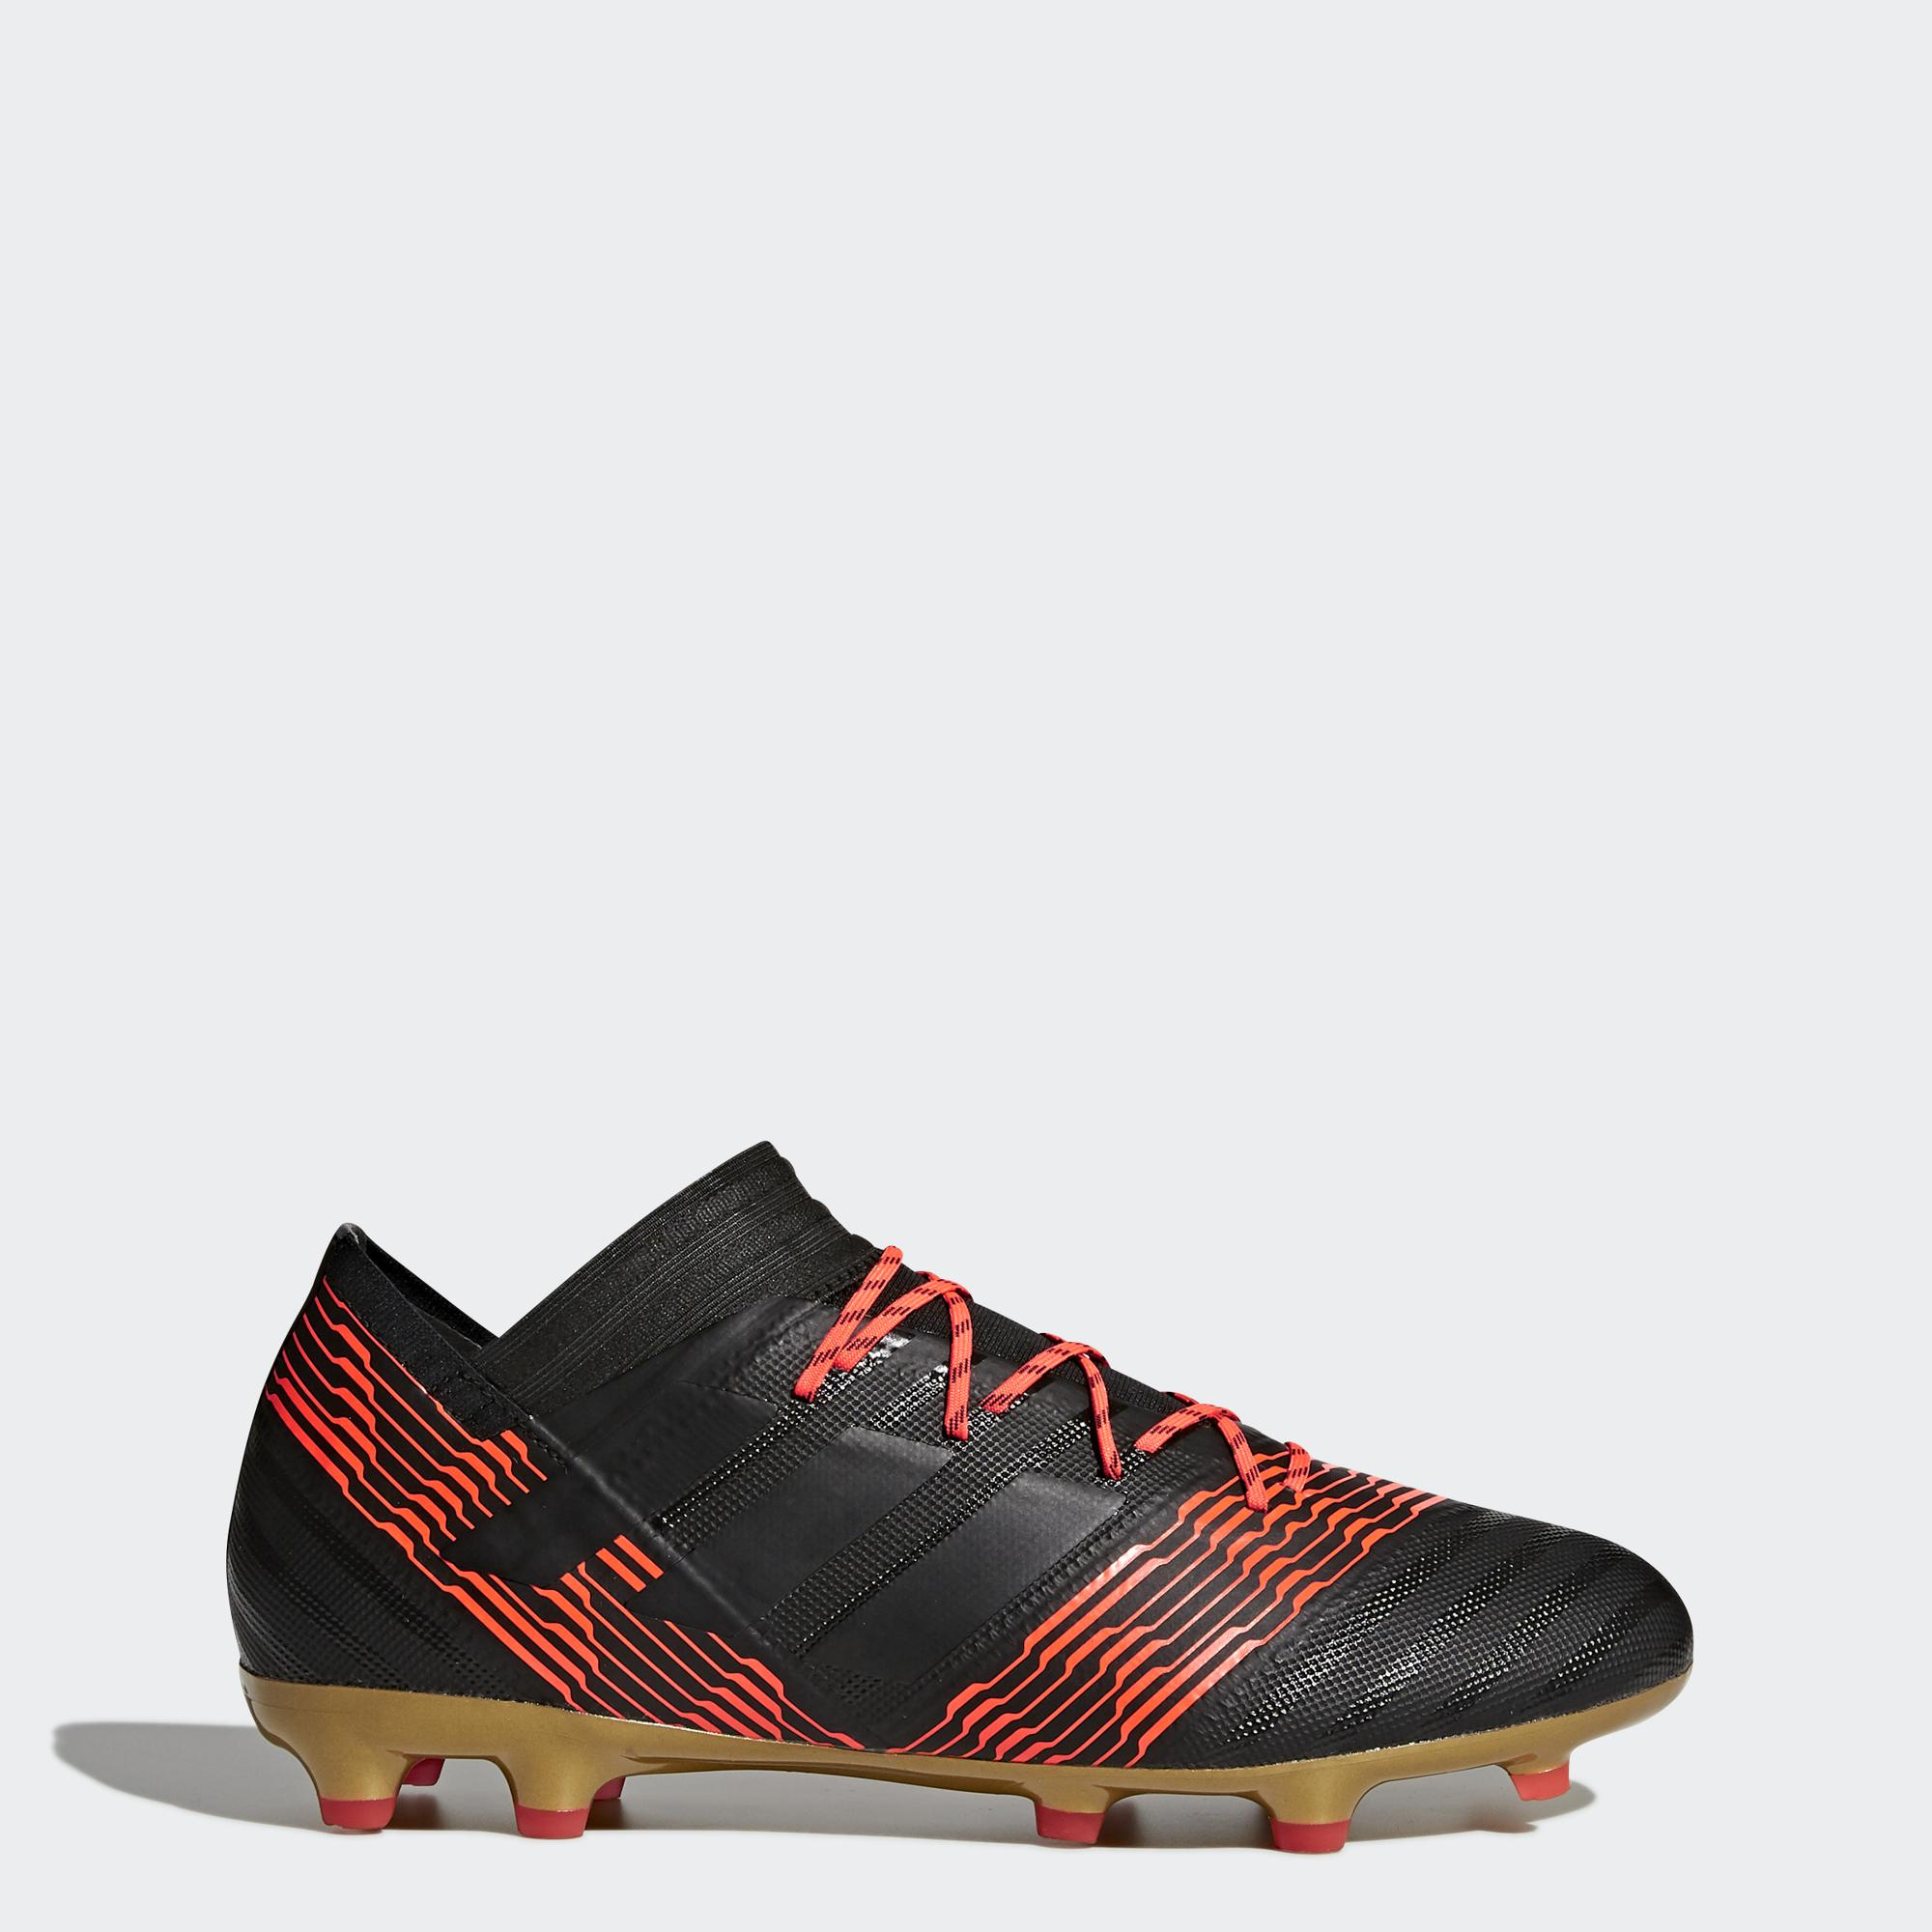 c35c0ae49d64 Adidas Football Shoes Nemeziz 17.2 Fg Black - Tifoshop.com